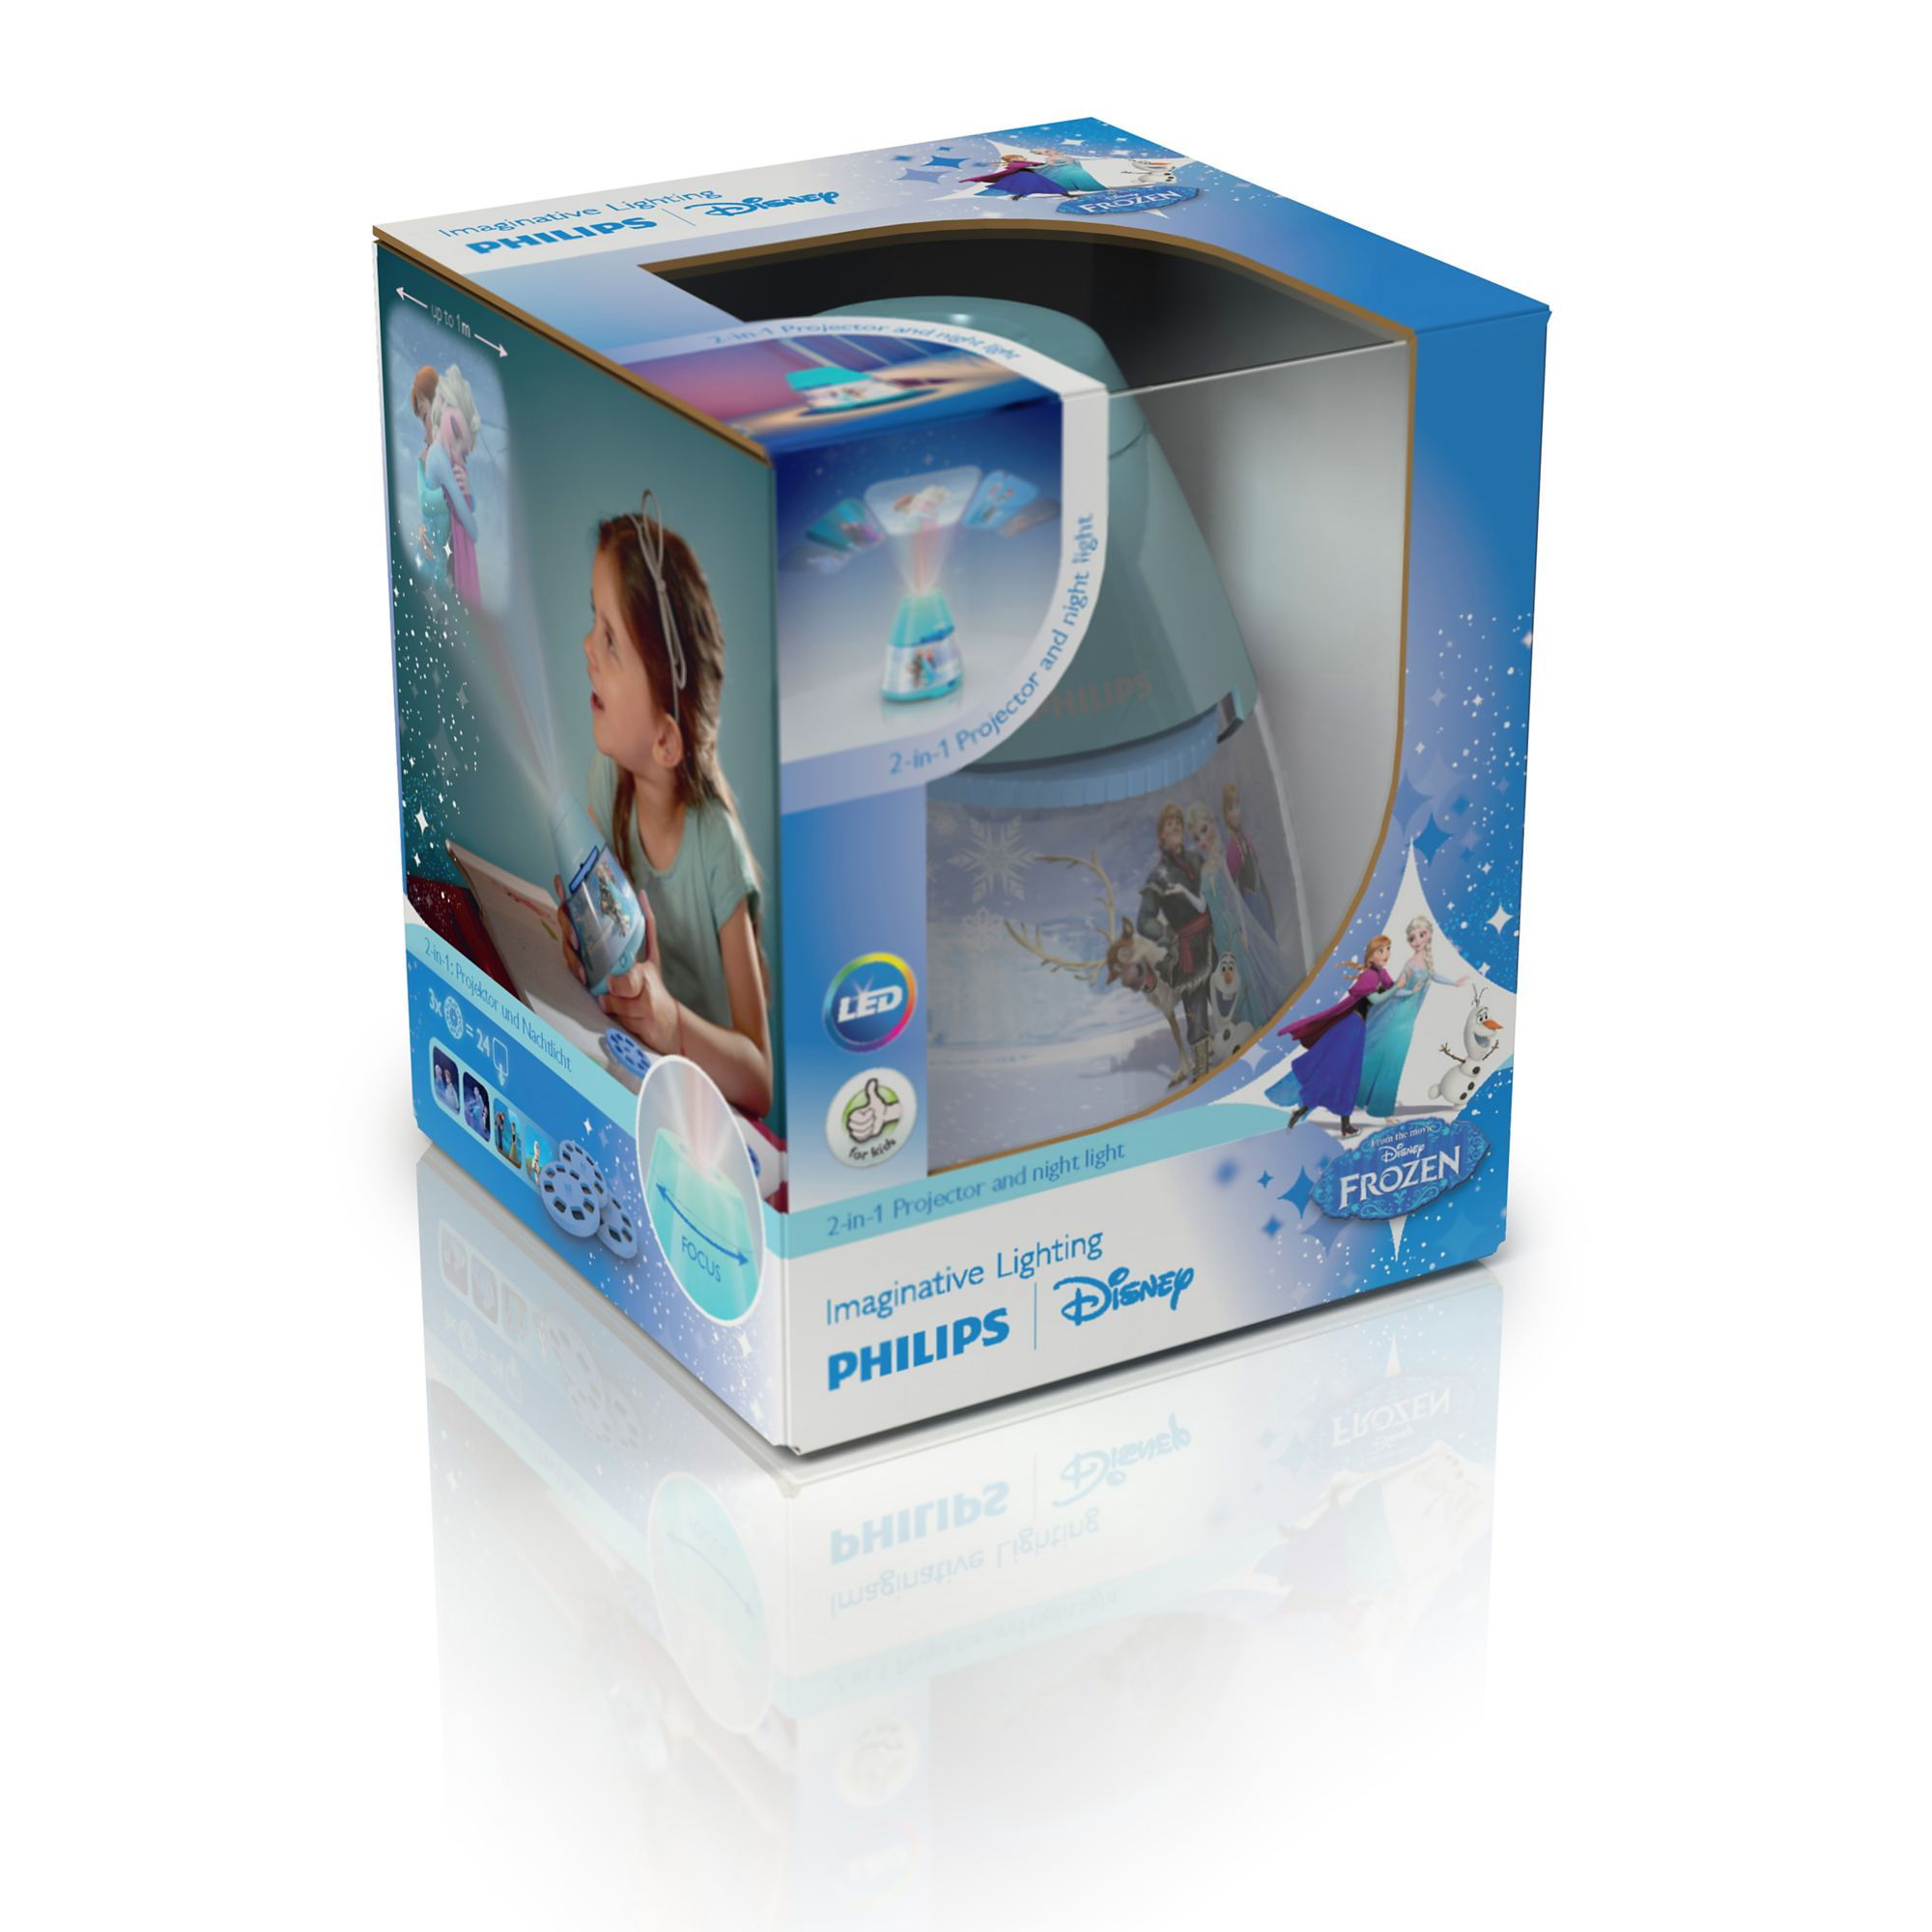 Lamp And Nightlight Philips Disney Frozen Children 39s Led Night Light Projector